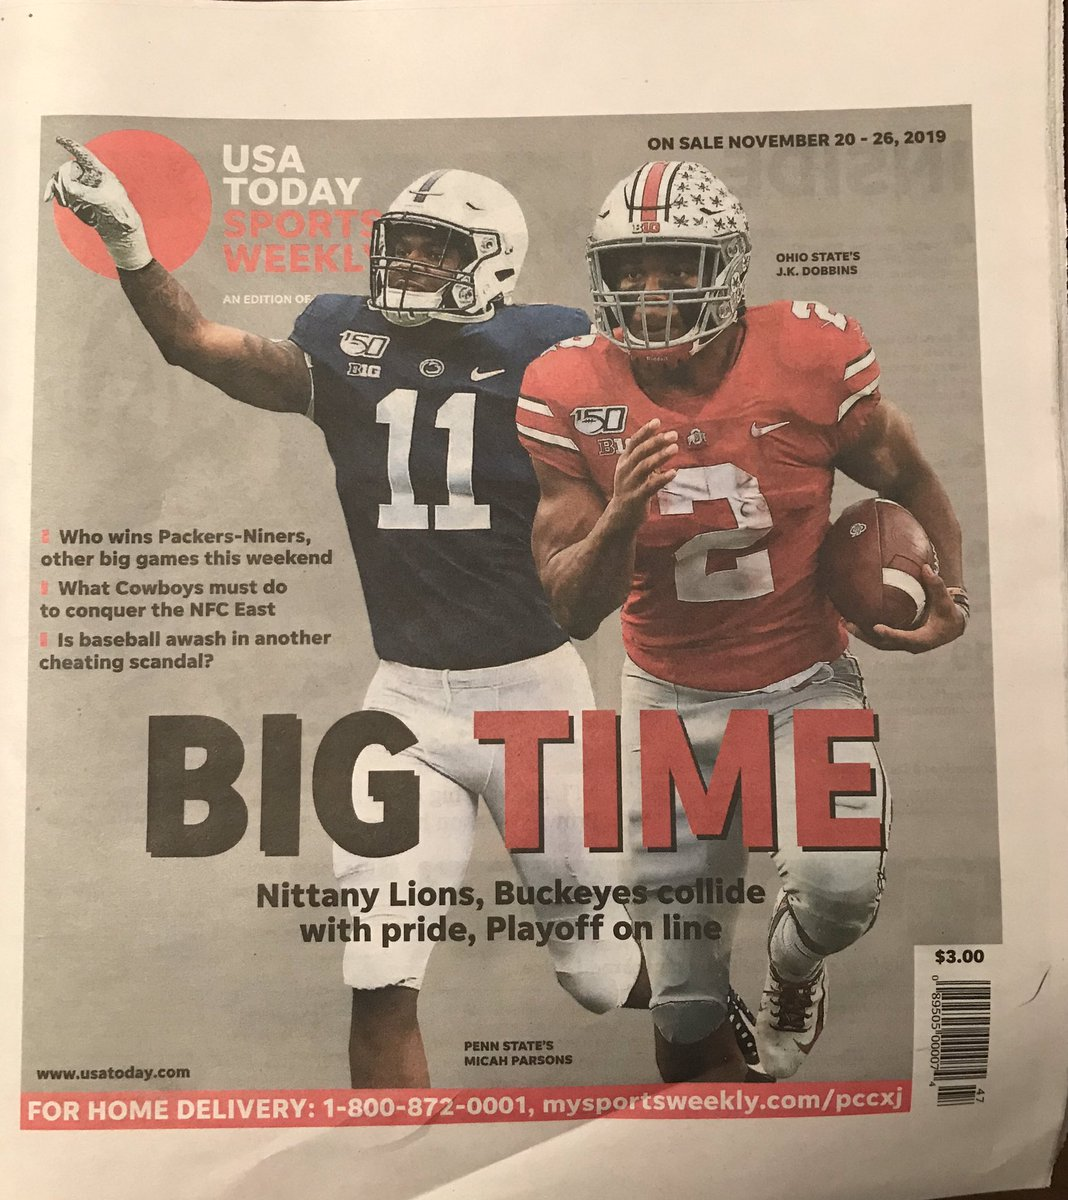 Thankful for the opportunity to write another cover story for USA Today Sports Weekly @OhioStateFB #OSU @Buckeyes